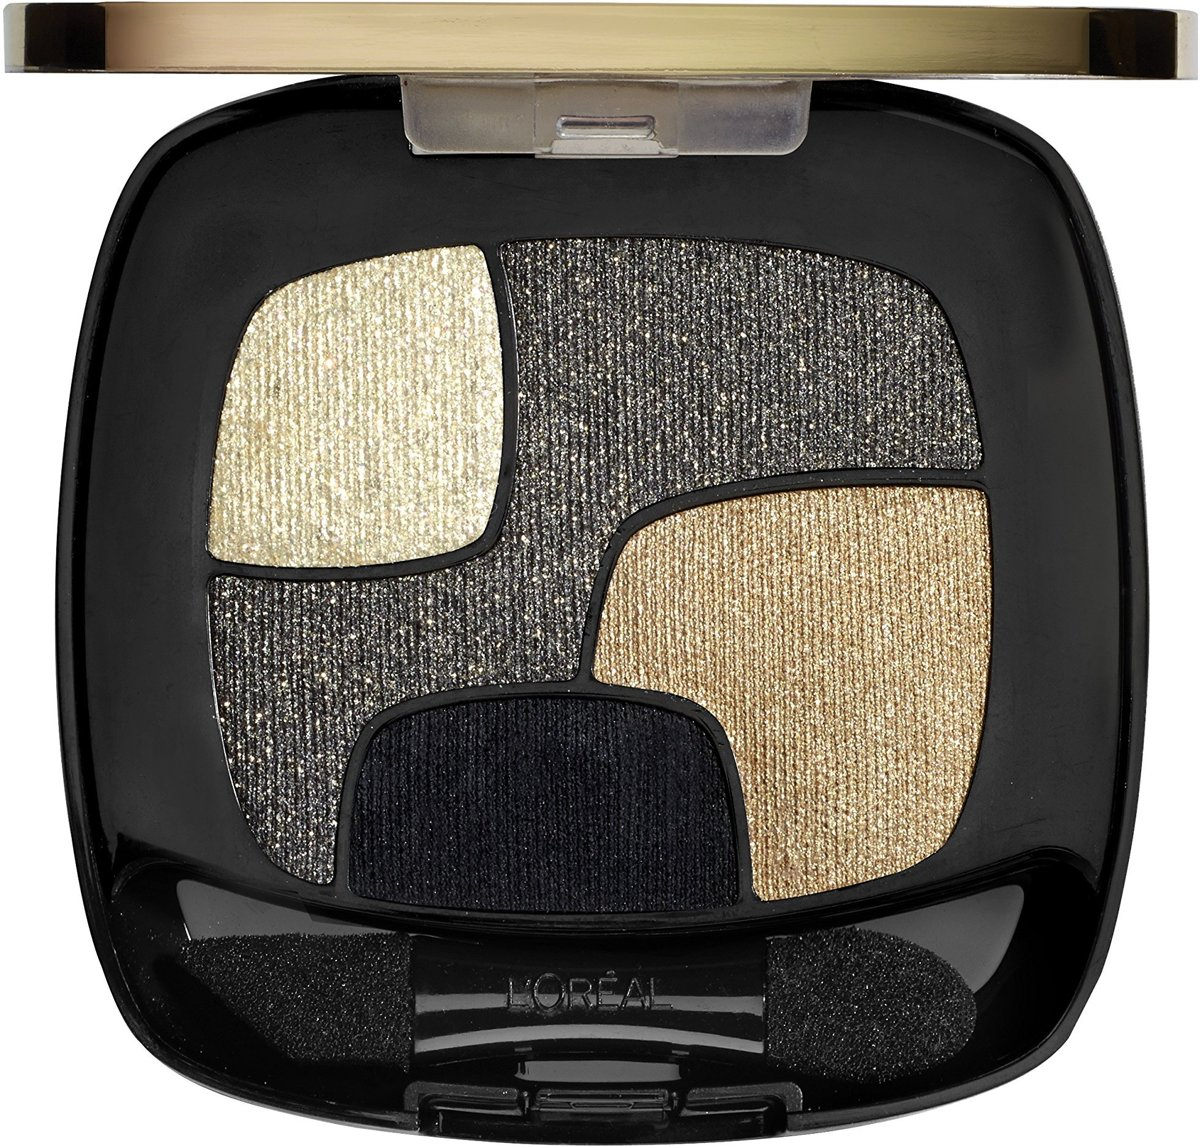 LOréal Paris Color Riche Quad eyeshadow P14 Golden Black